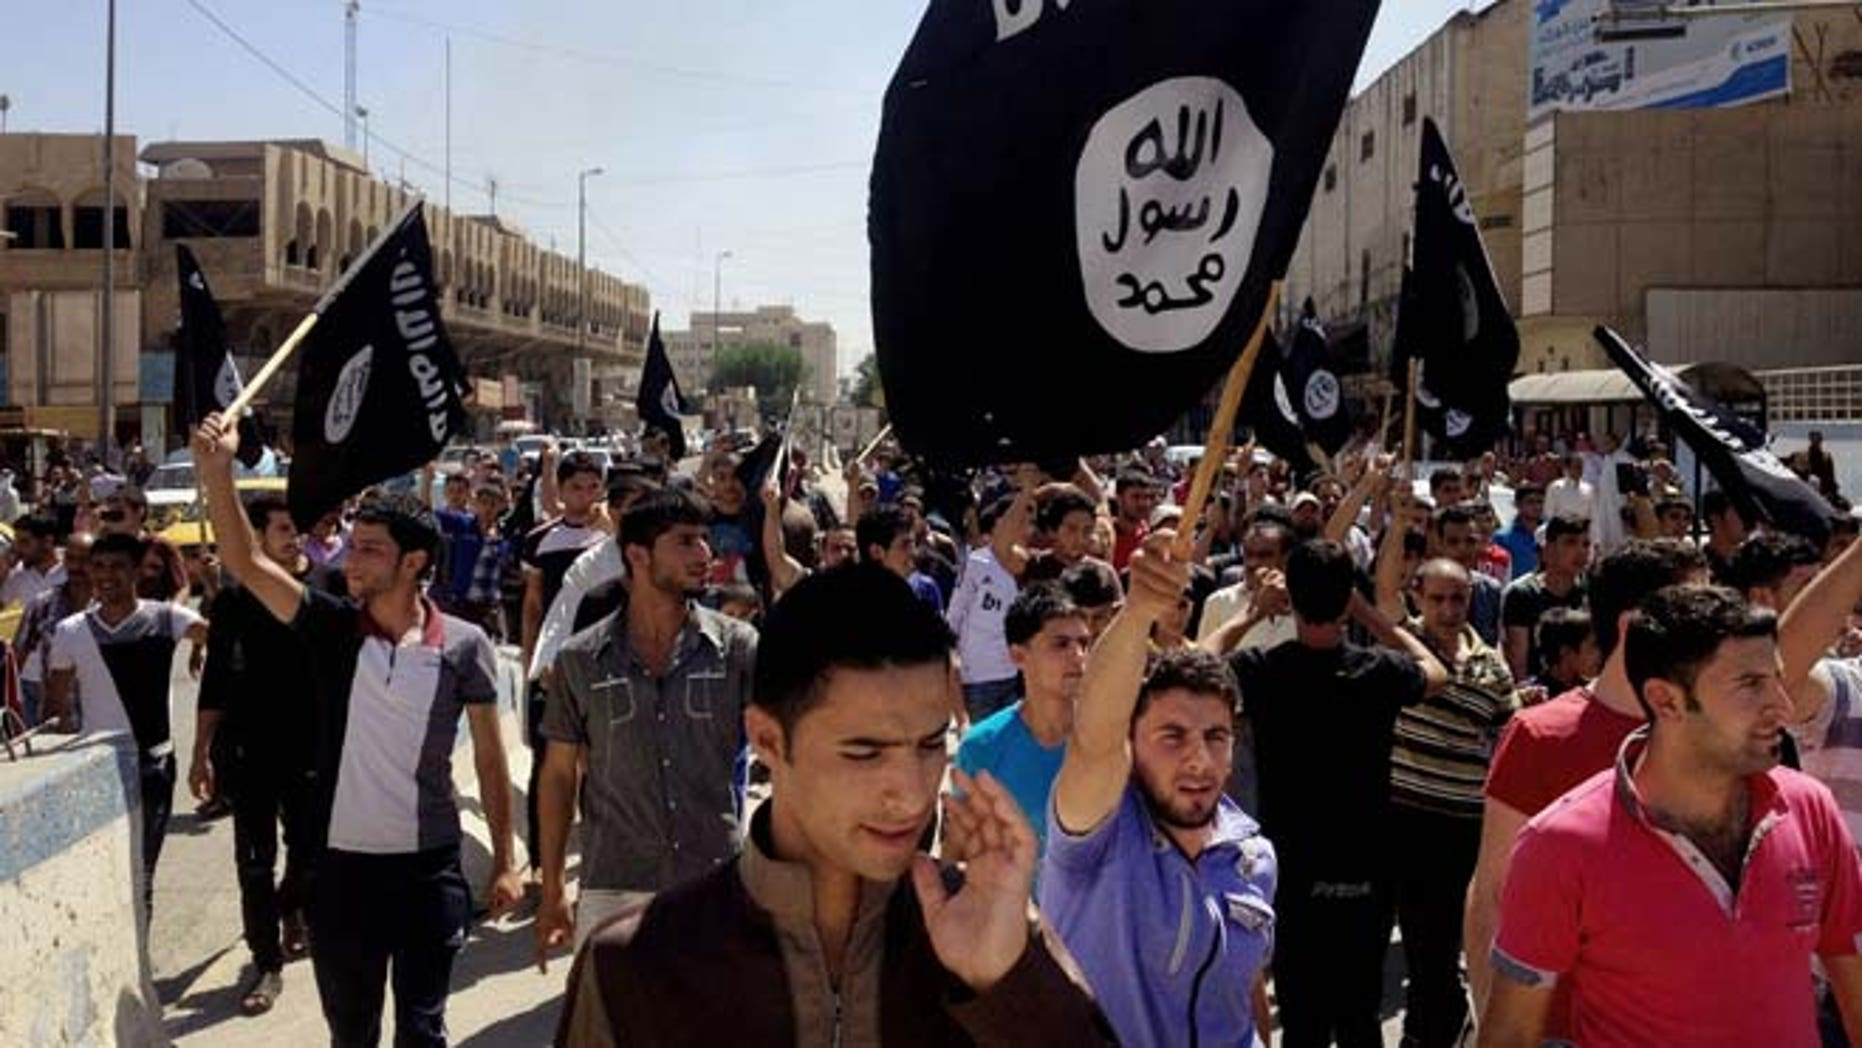 June 16, 2014: Demonstrators chant pro-Islamic State group slogans as they carry the group's flags in front of the provincial government headquarters in Mosul, 225 miles northwest of Baghdad.